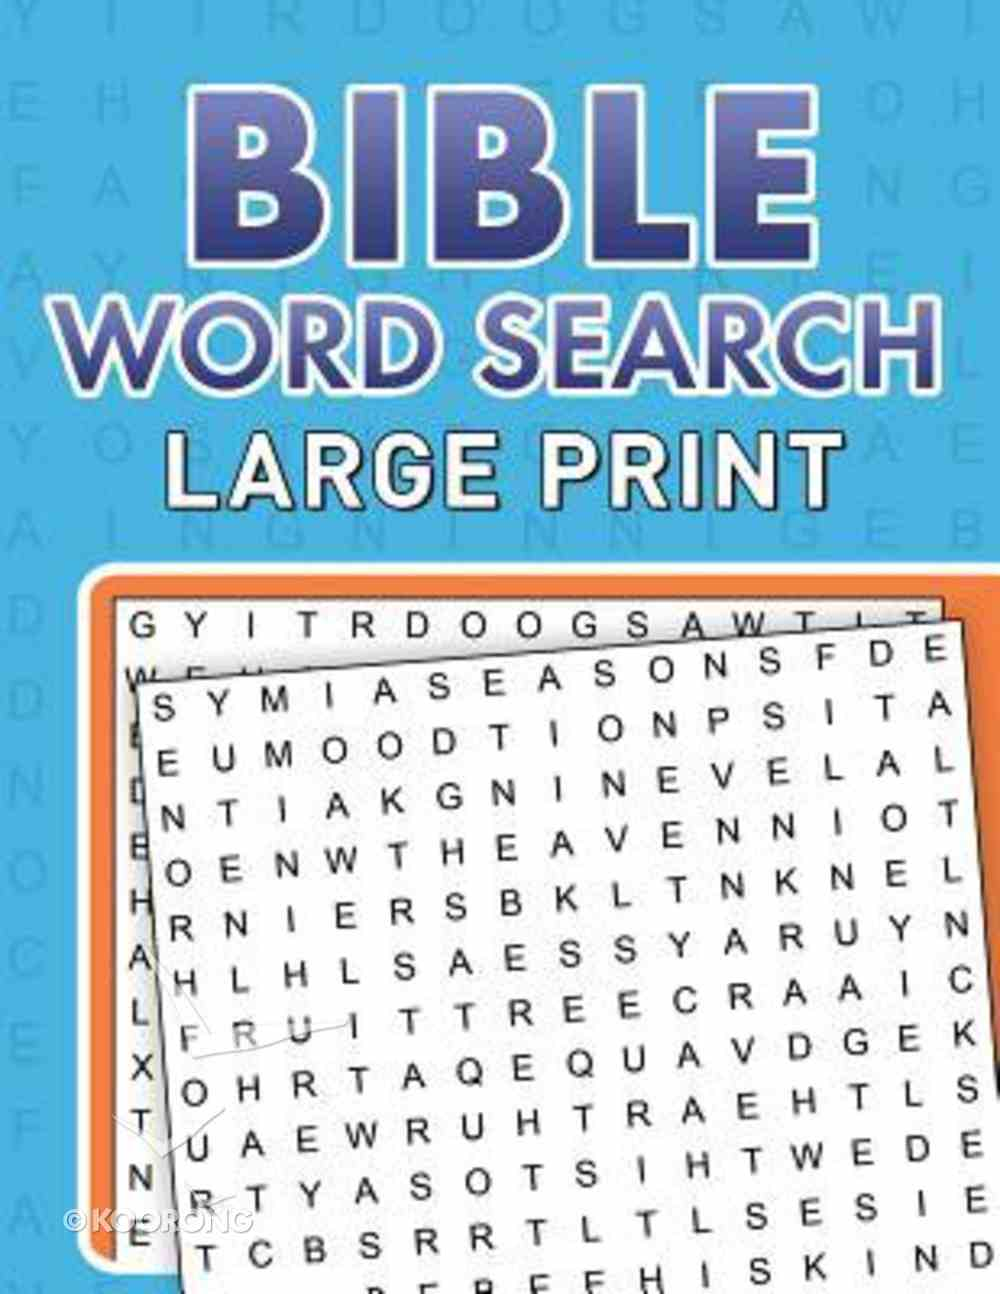 Bible Word Searches (Large Print) Paperback